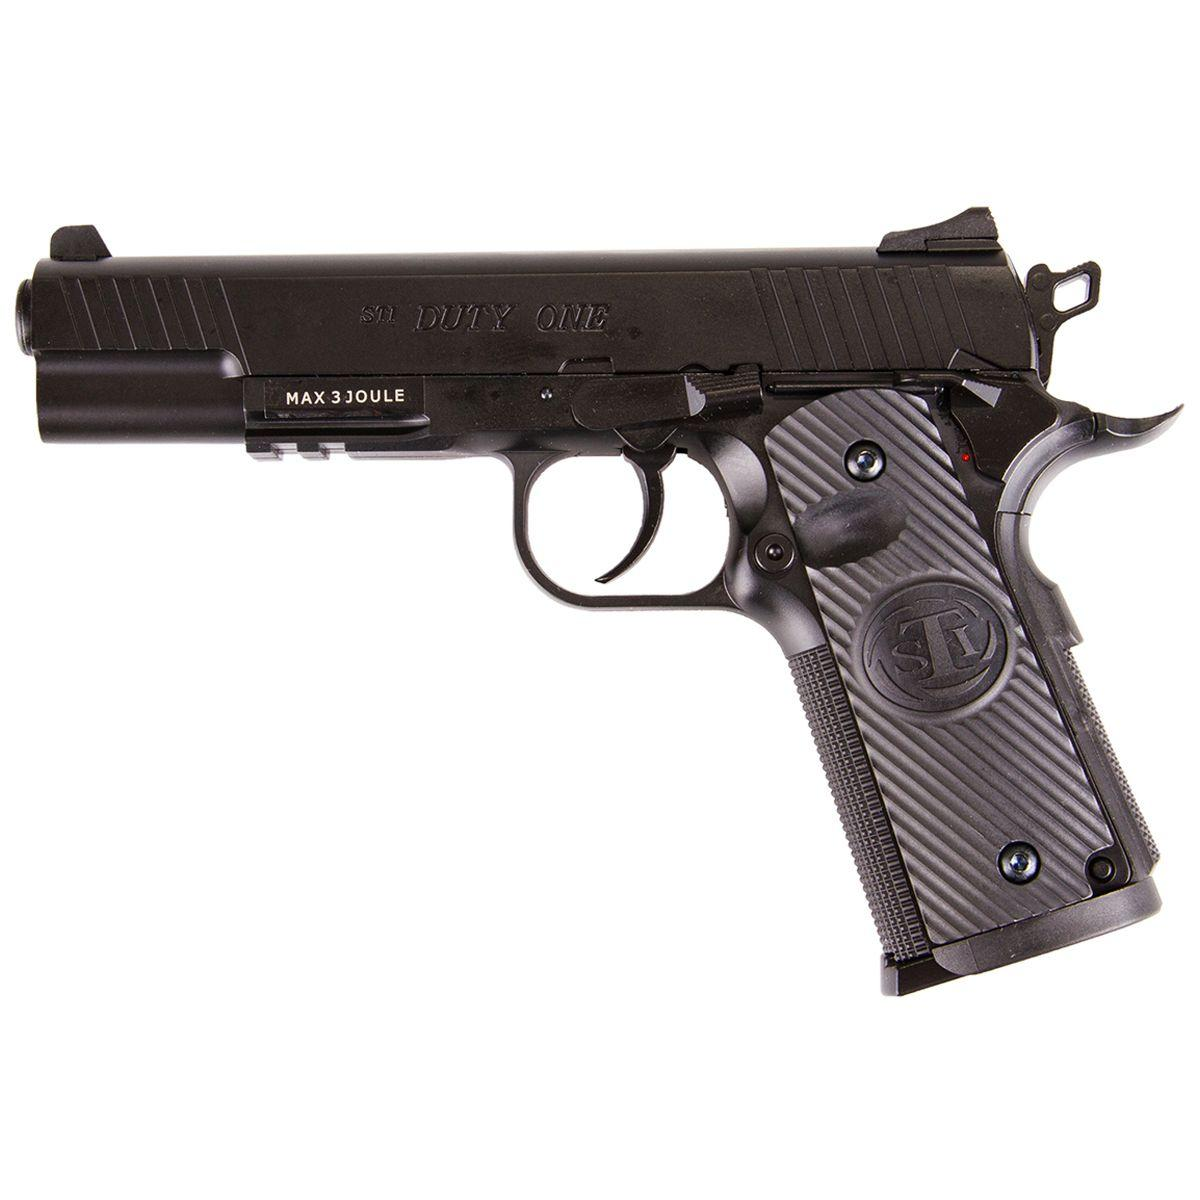 ASG STI Duty One 1911 CO2 Blowback Airsoft Pistol